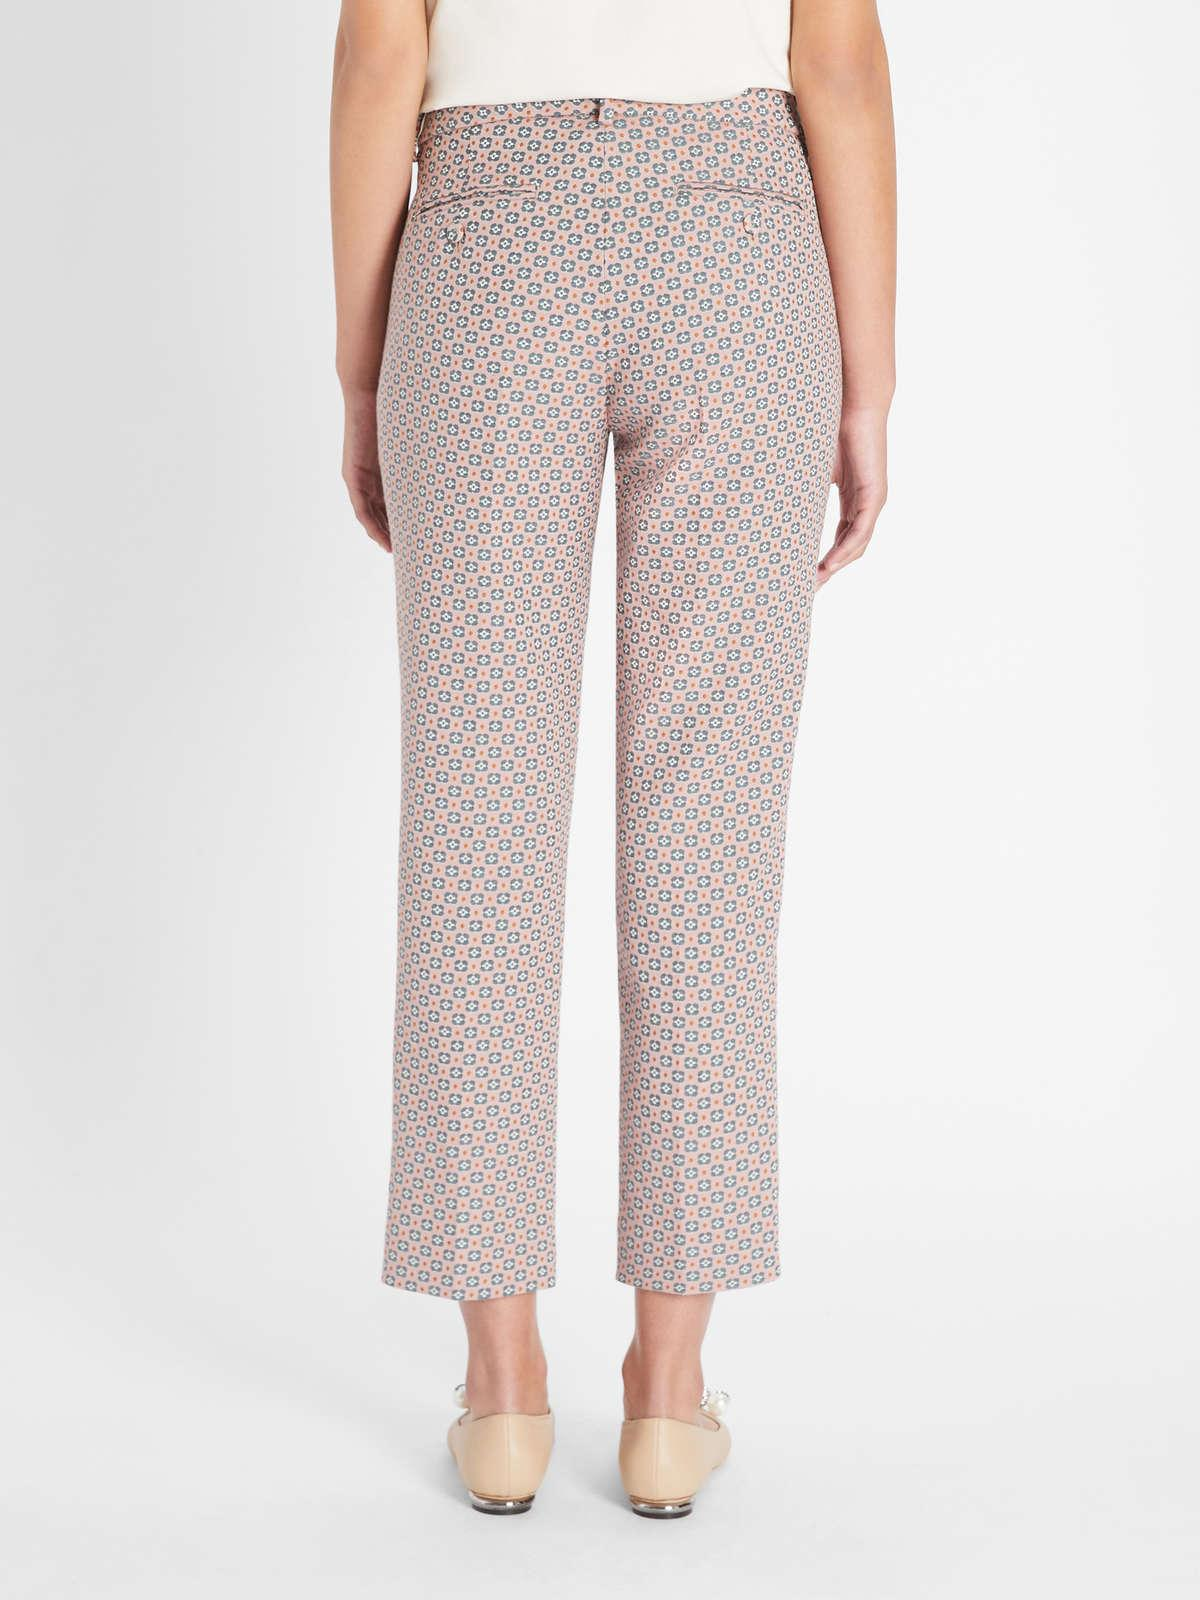 Womens Max Mara Trousers And Jeans | Cotton Jacquard Trousers Pink